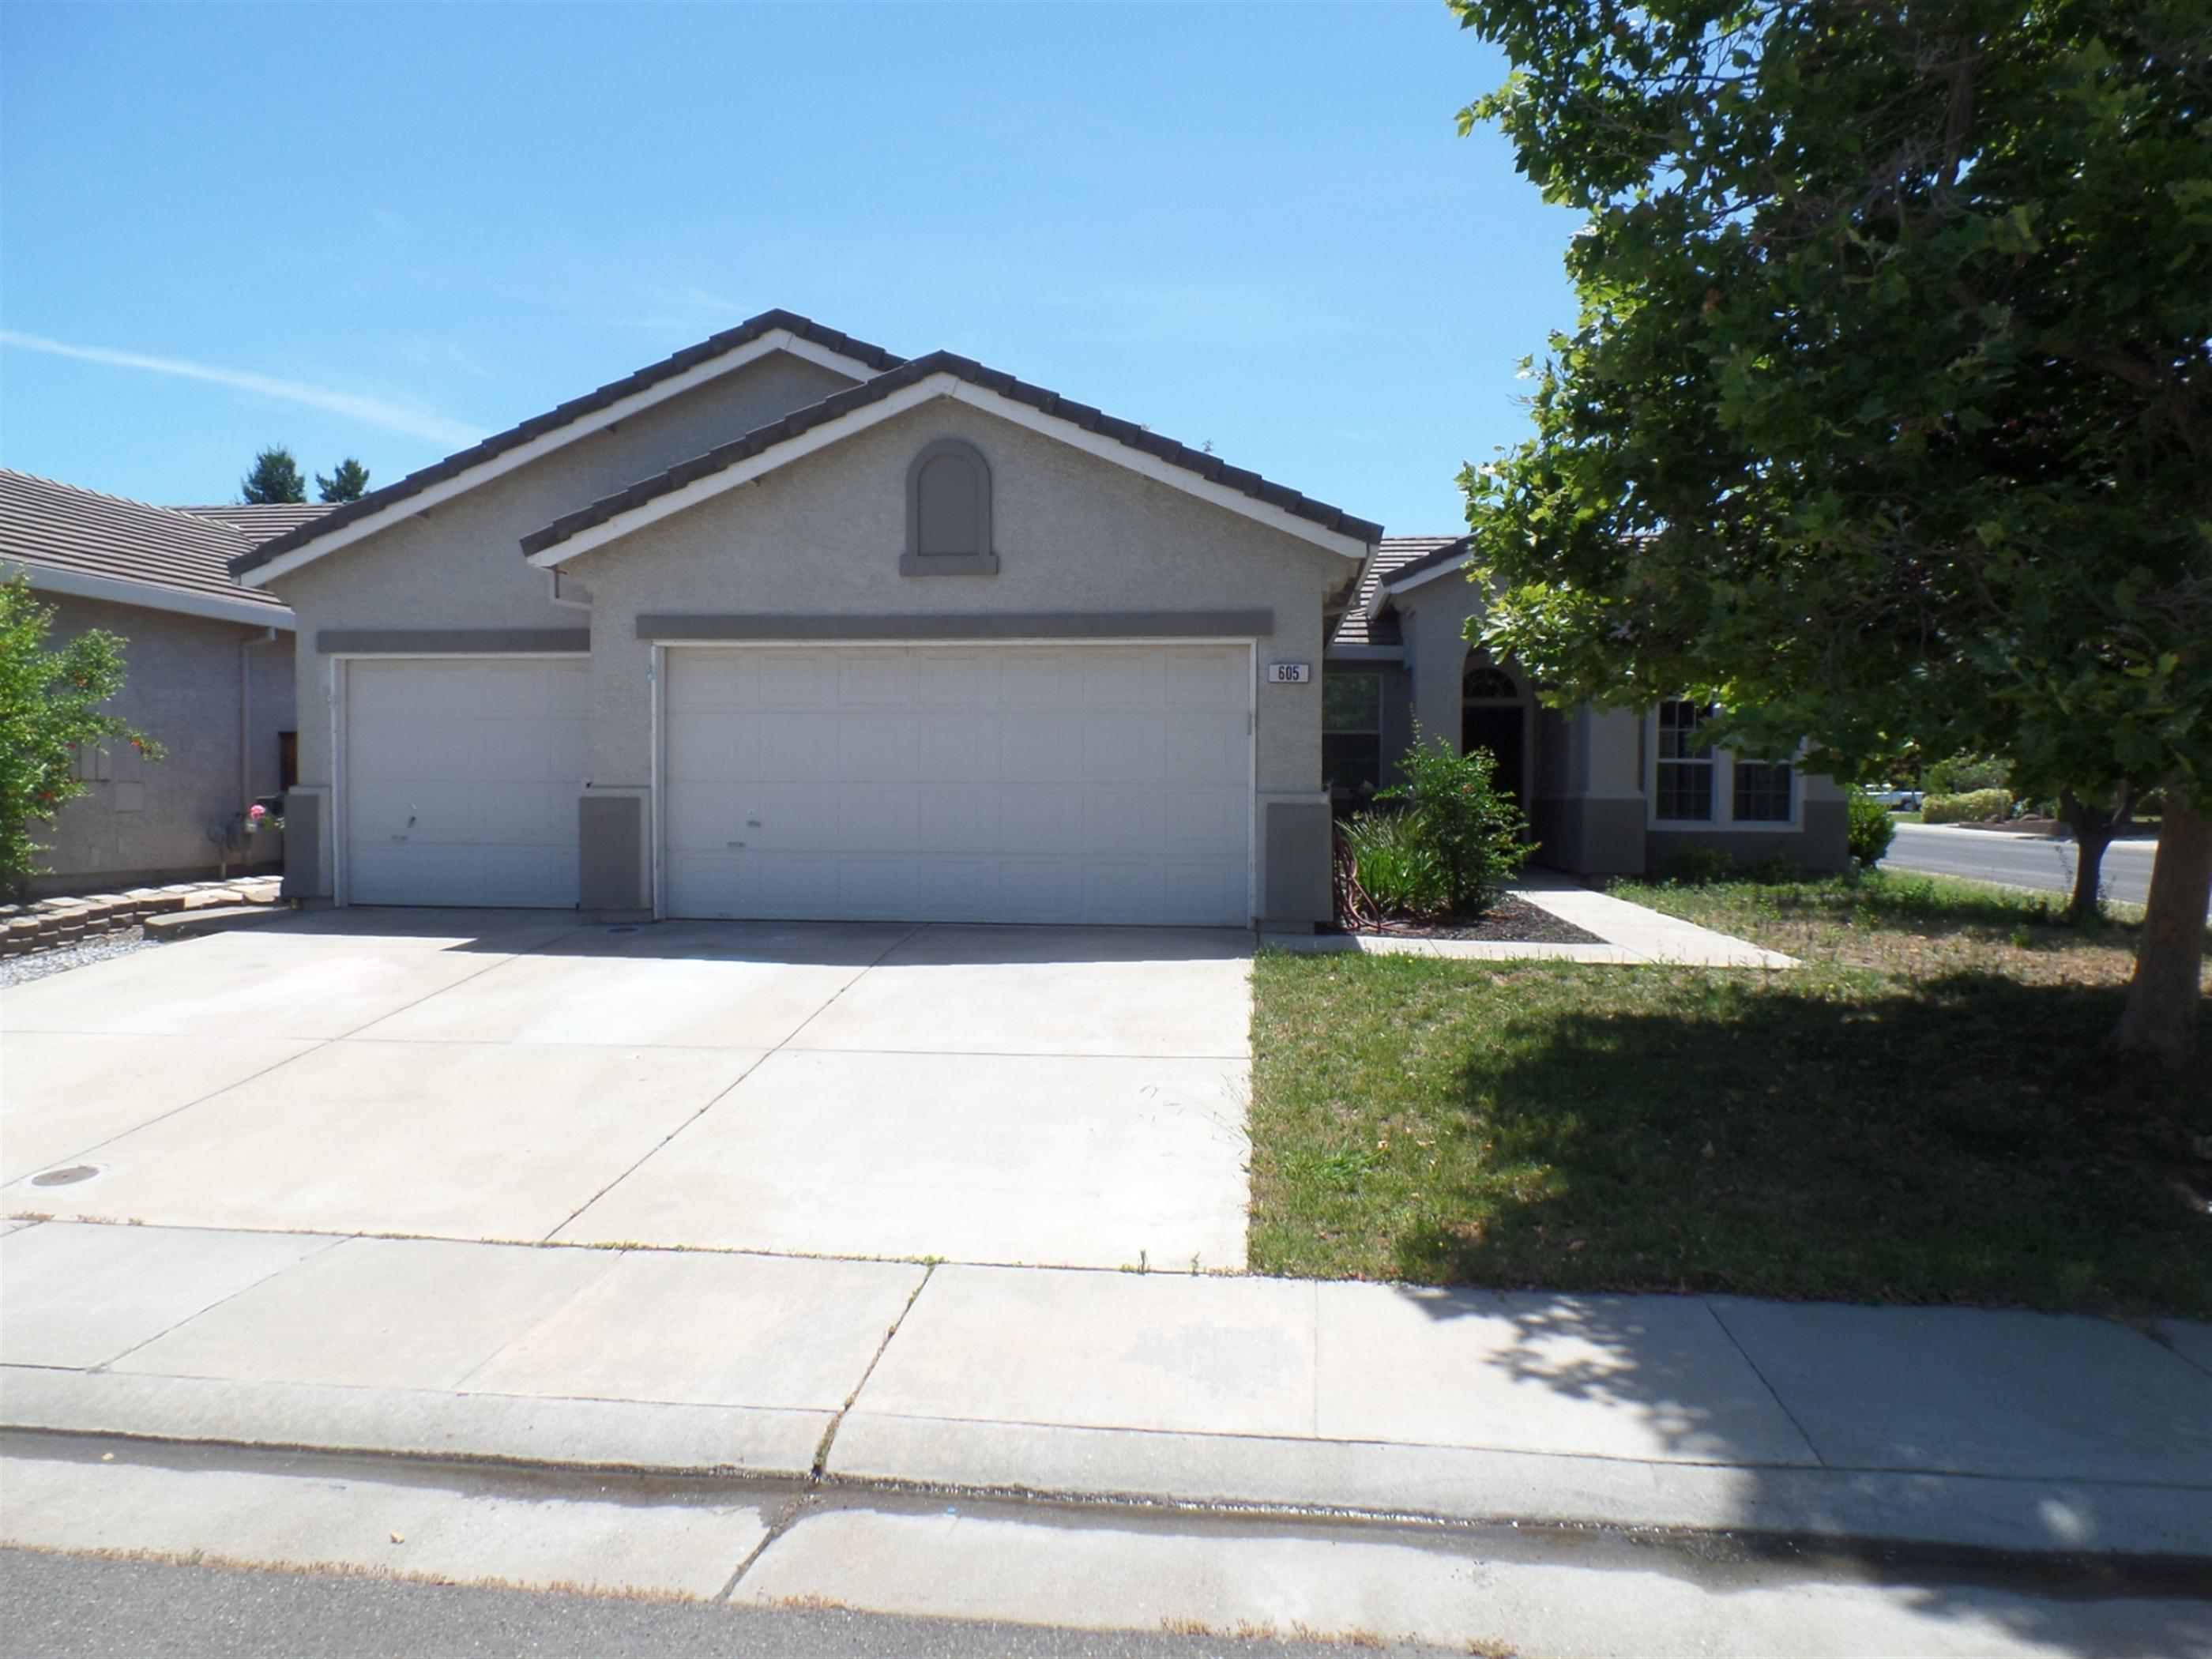 605 Widgeon Ct, Lincoln, CA 95648